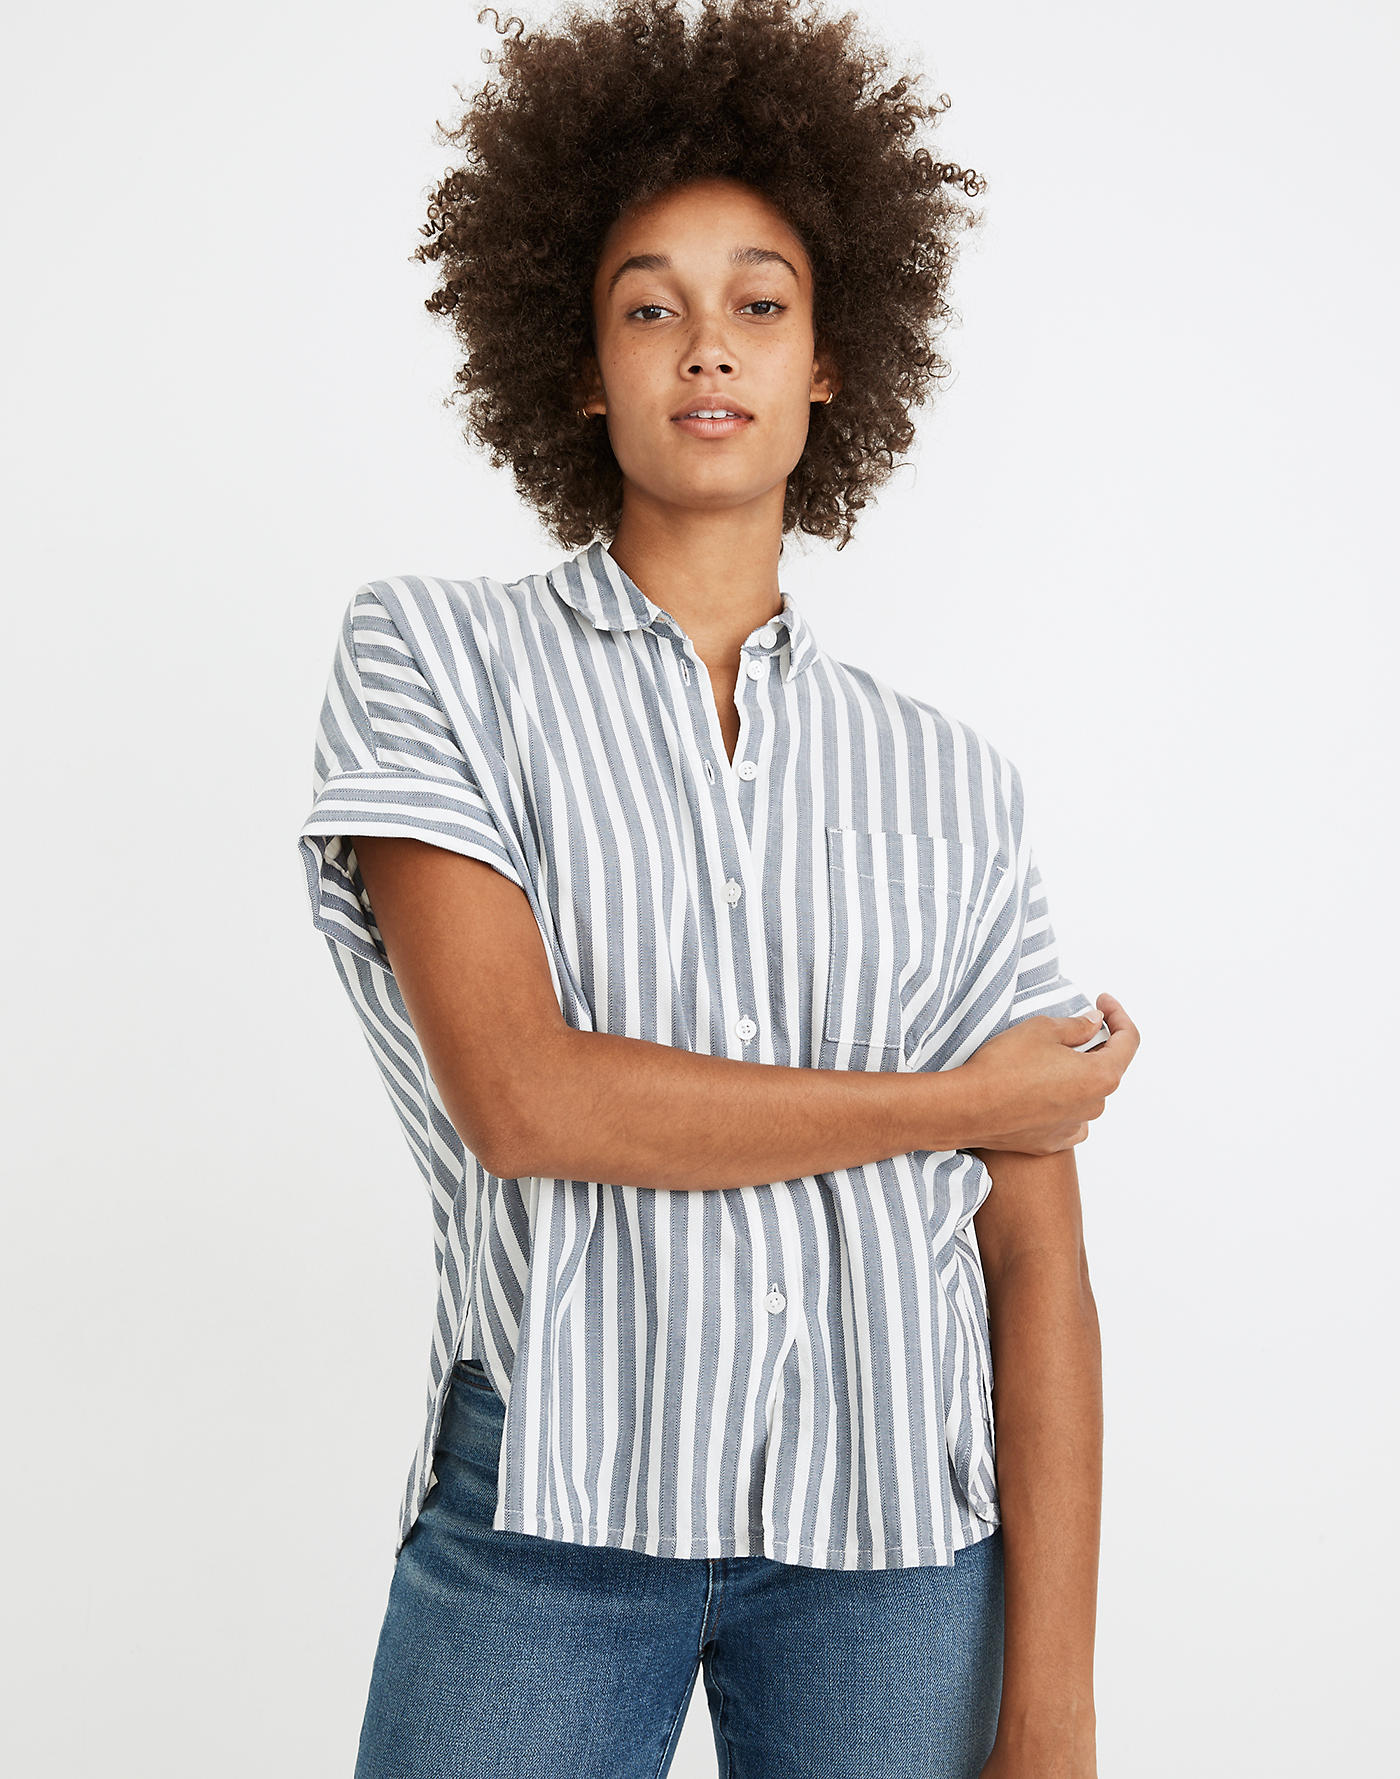 Madewell Daily Shirt in Stripe